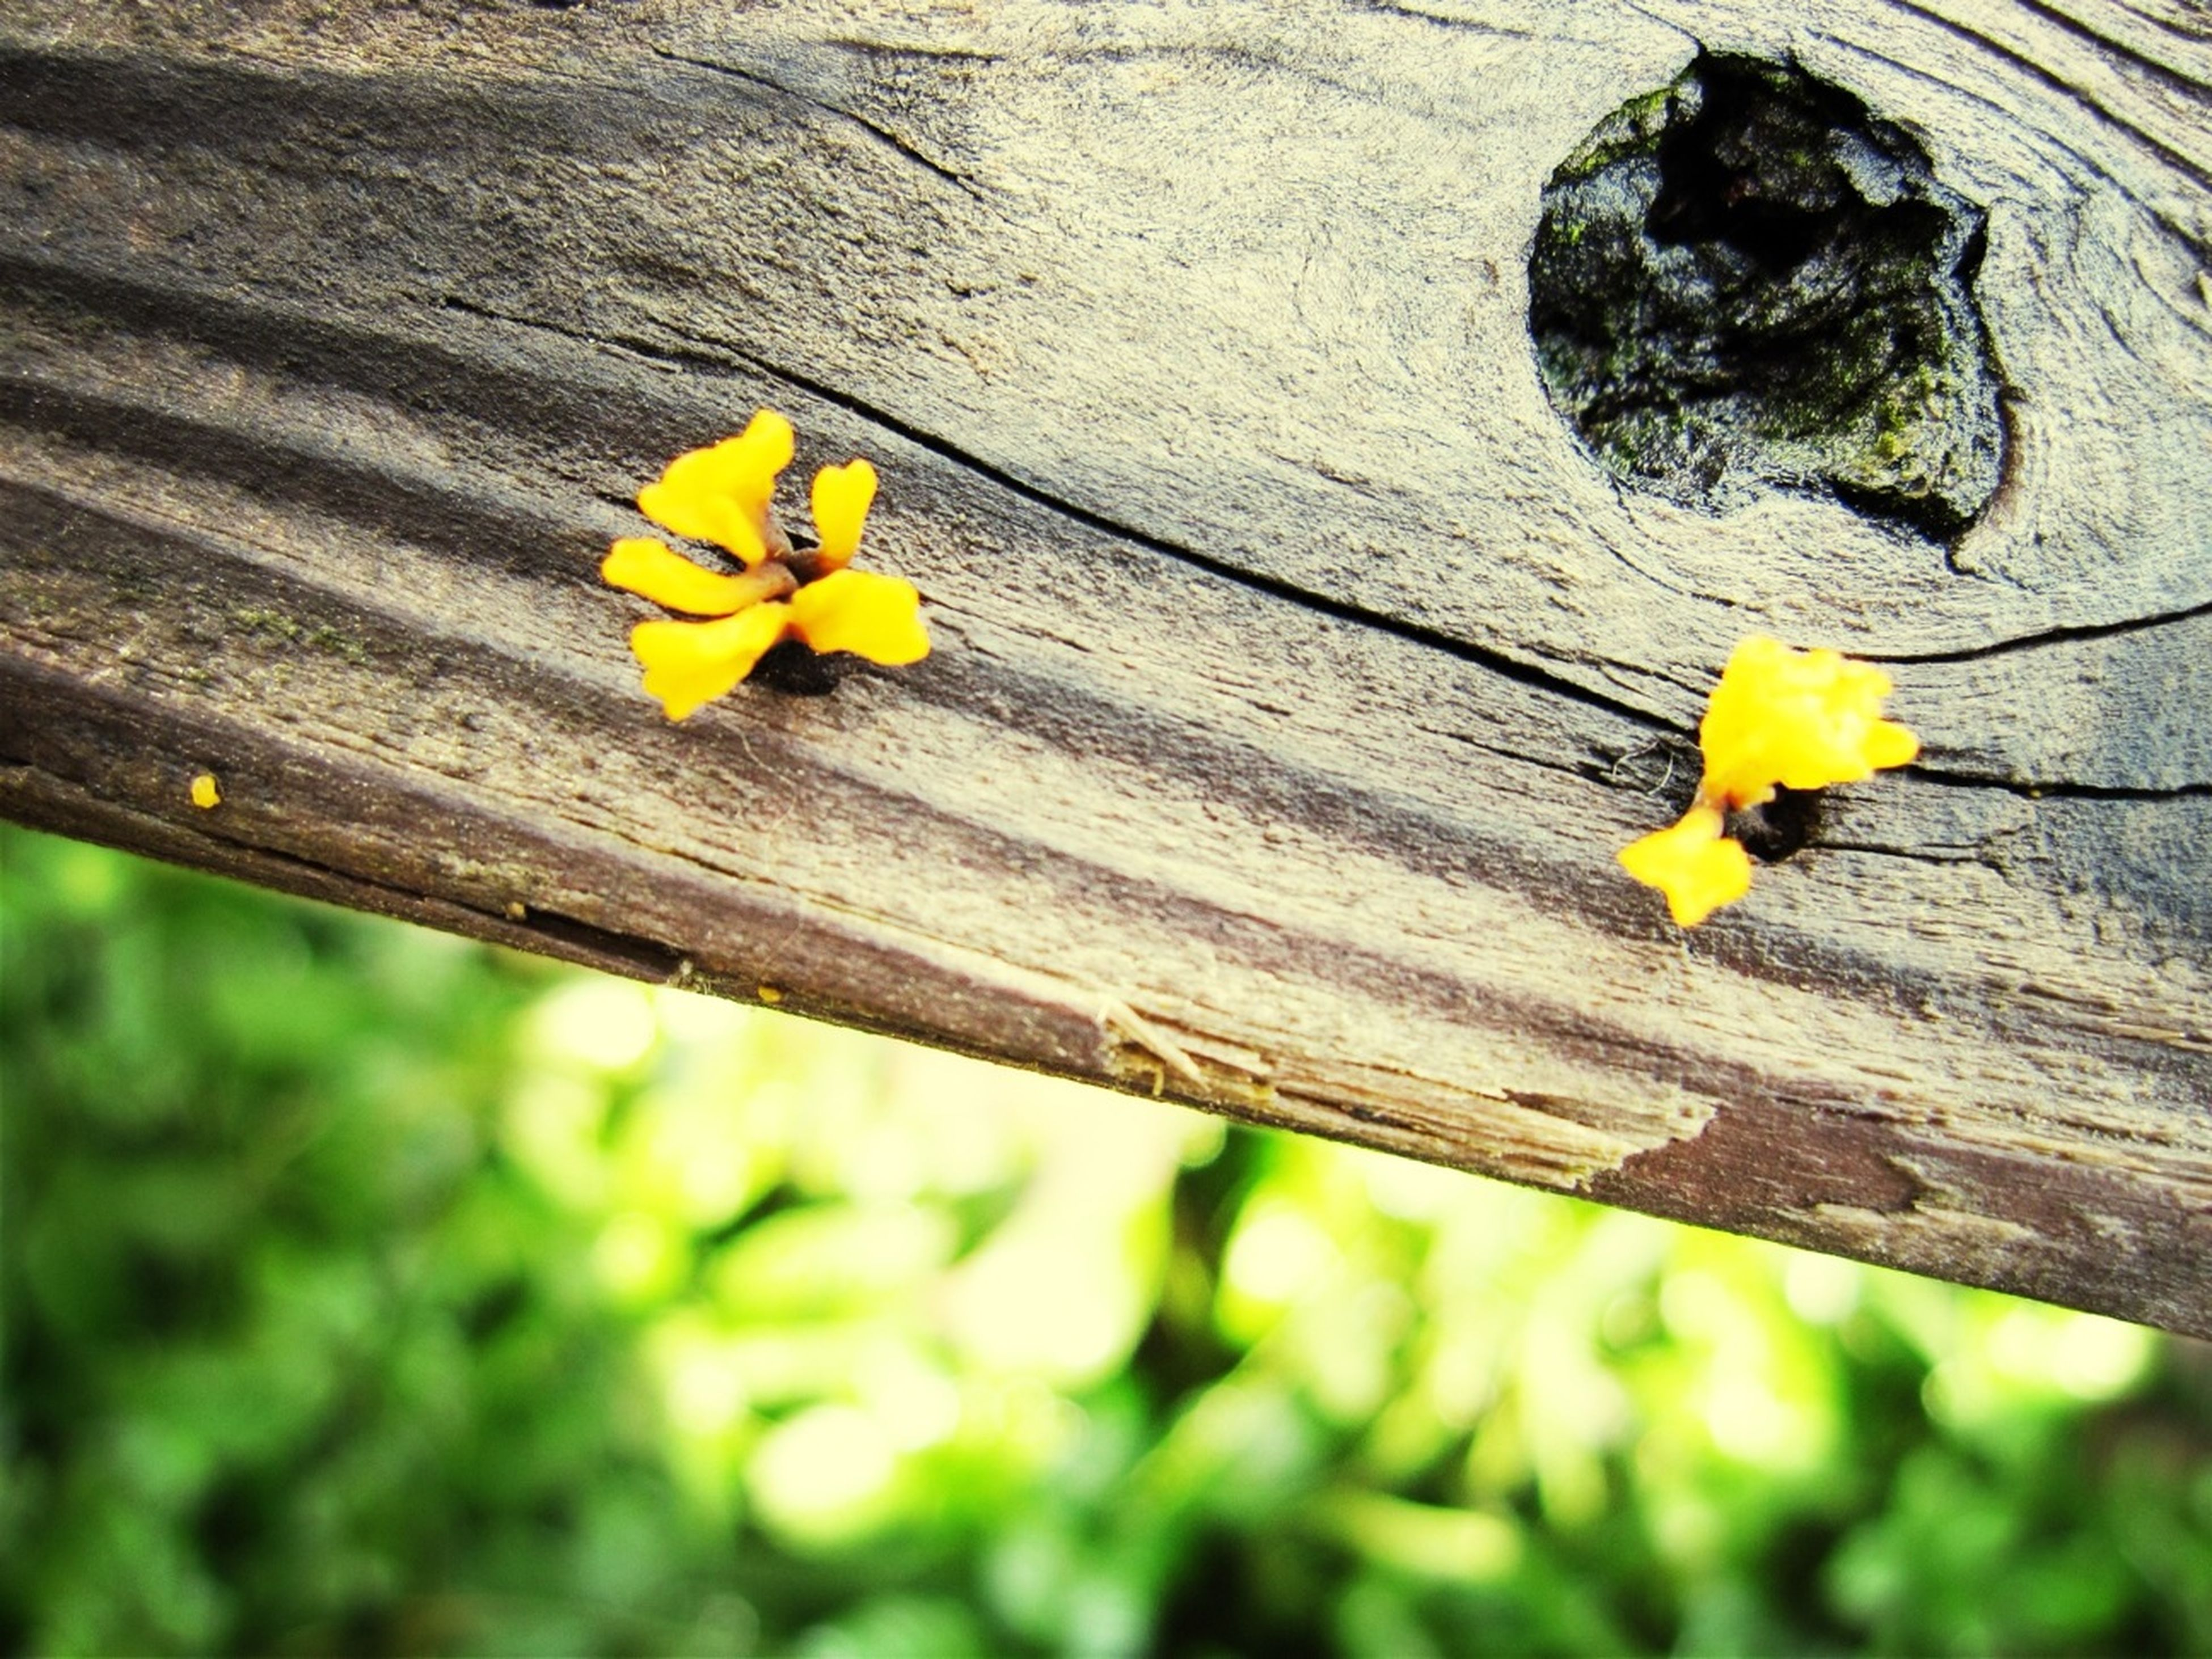 yellow, flower, wood - material, wooden, fragility, leaf, petal, freshness, close-up, growth, wood, nature, day, built structure, plant, plank, outdoors, no people, stem, high angle view